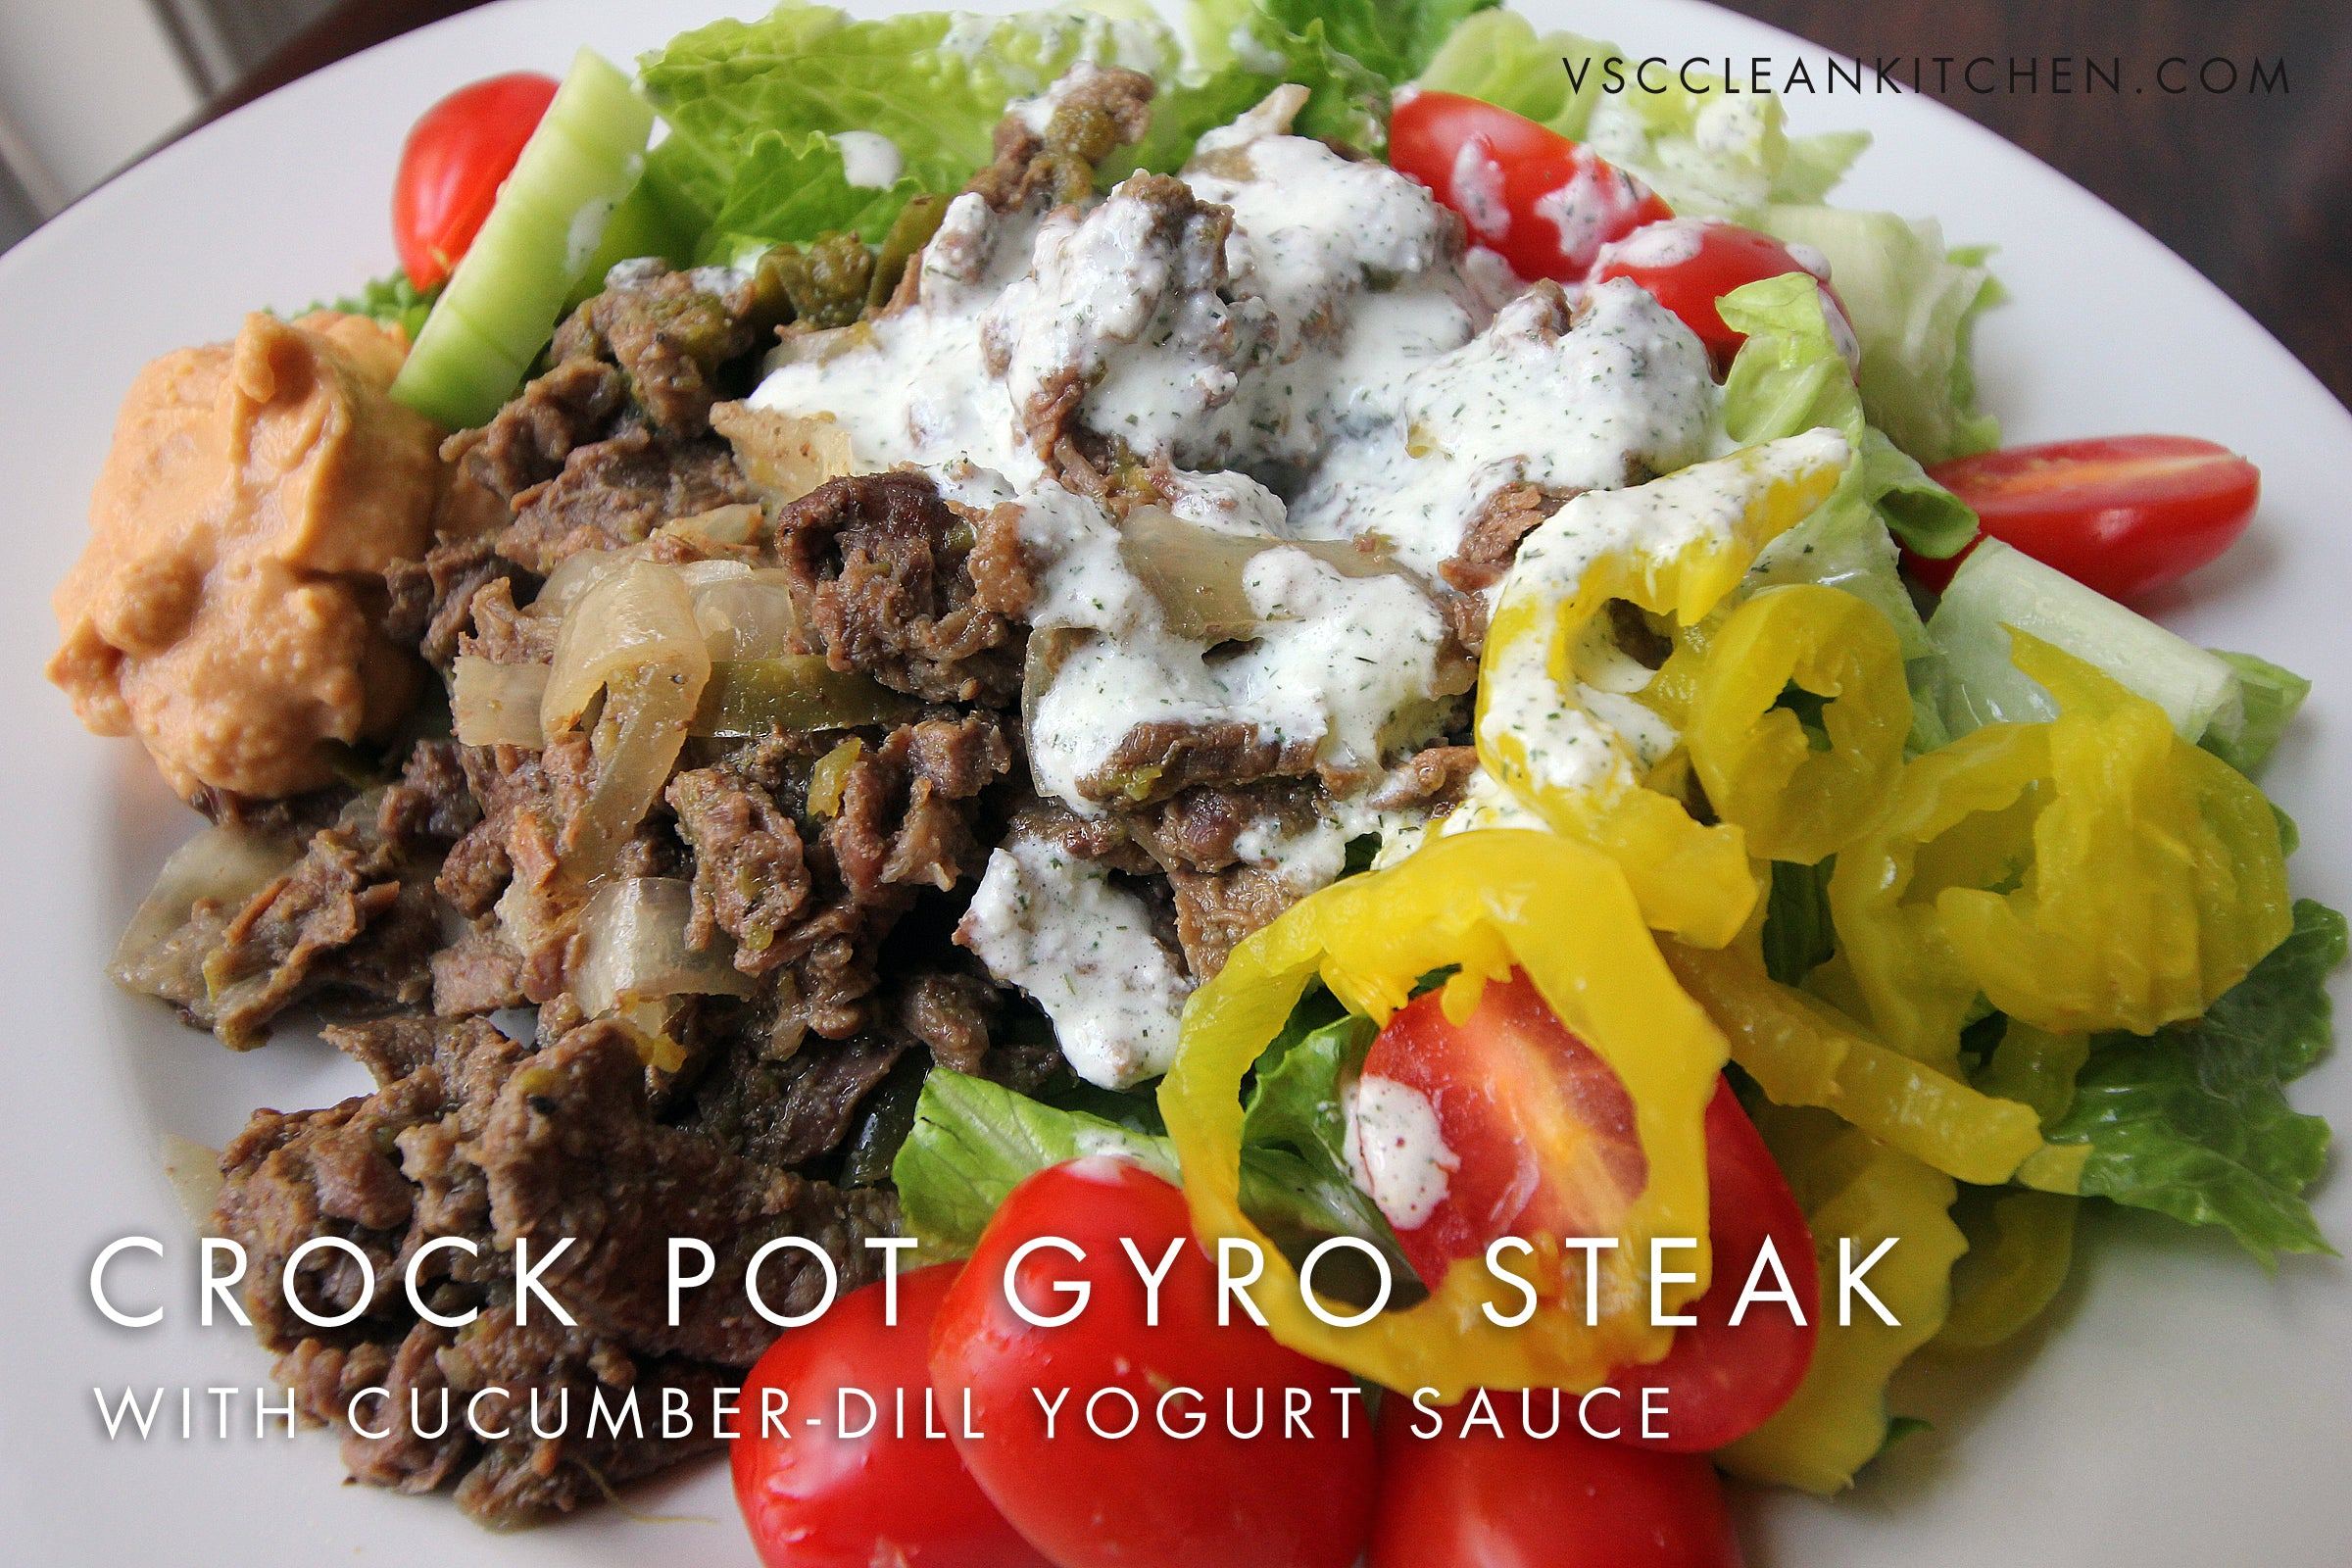 Crock Pot Gyro Steak